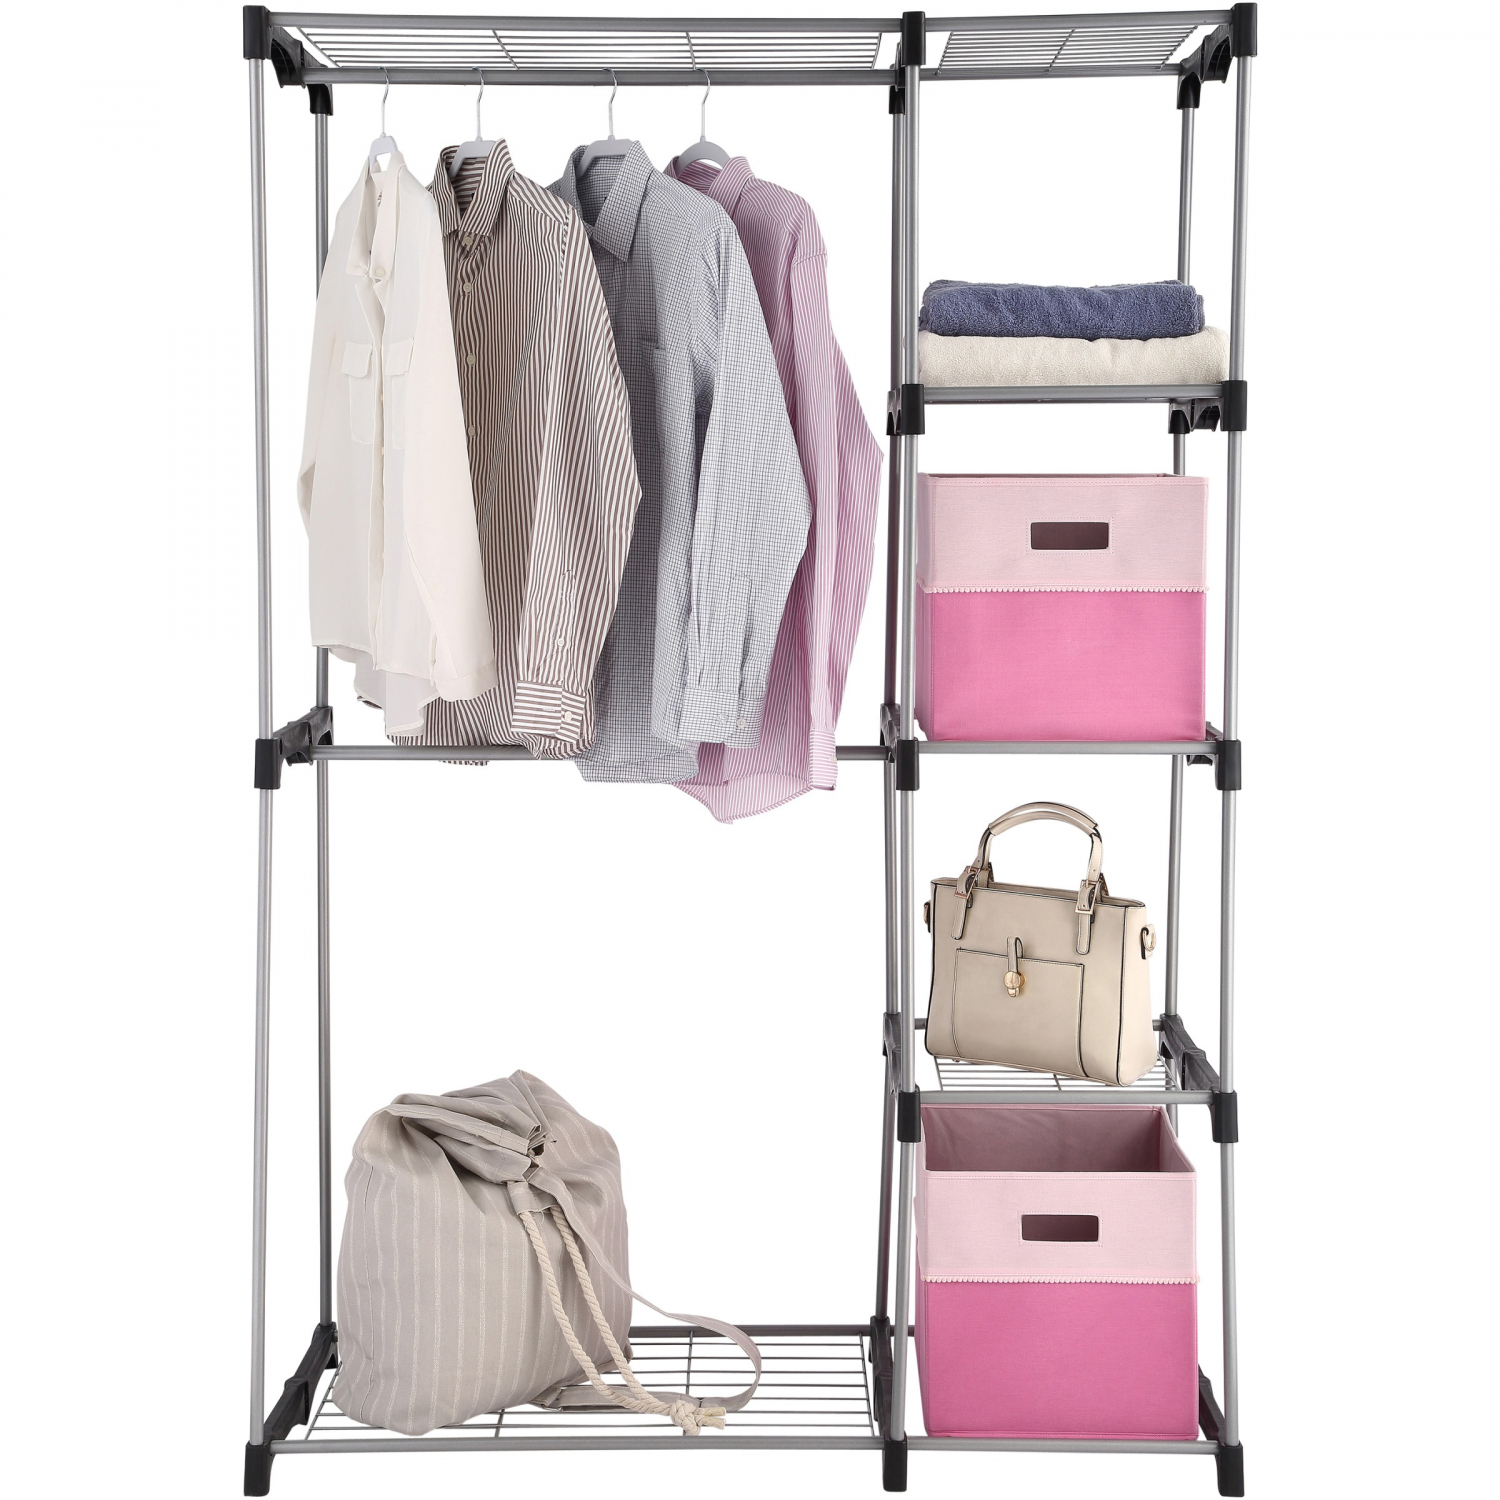 2 Tier Wire Shelf Closet Organizer Easy Assemble Garment Clothes